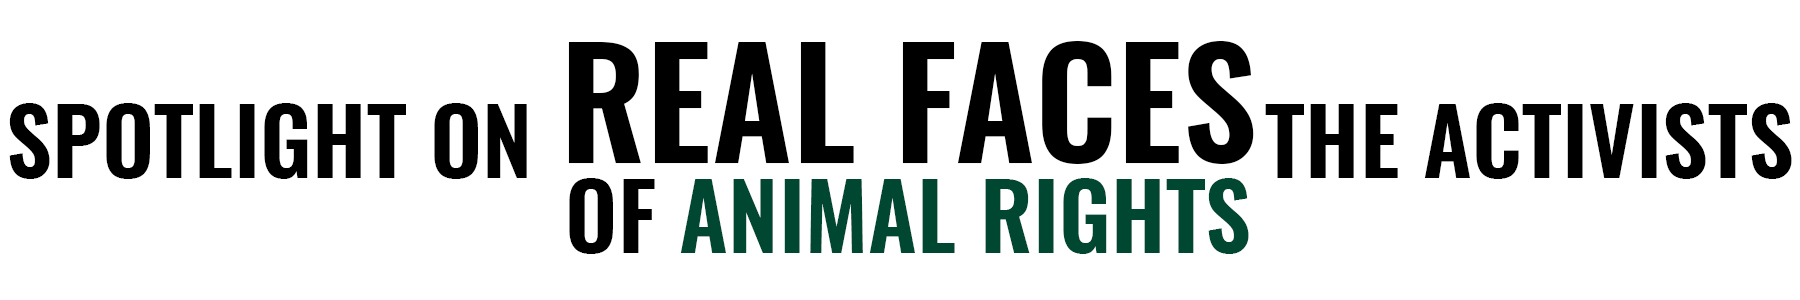 Real Faces of Animal Rights - Spotlight on the Activists